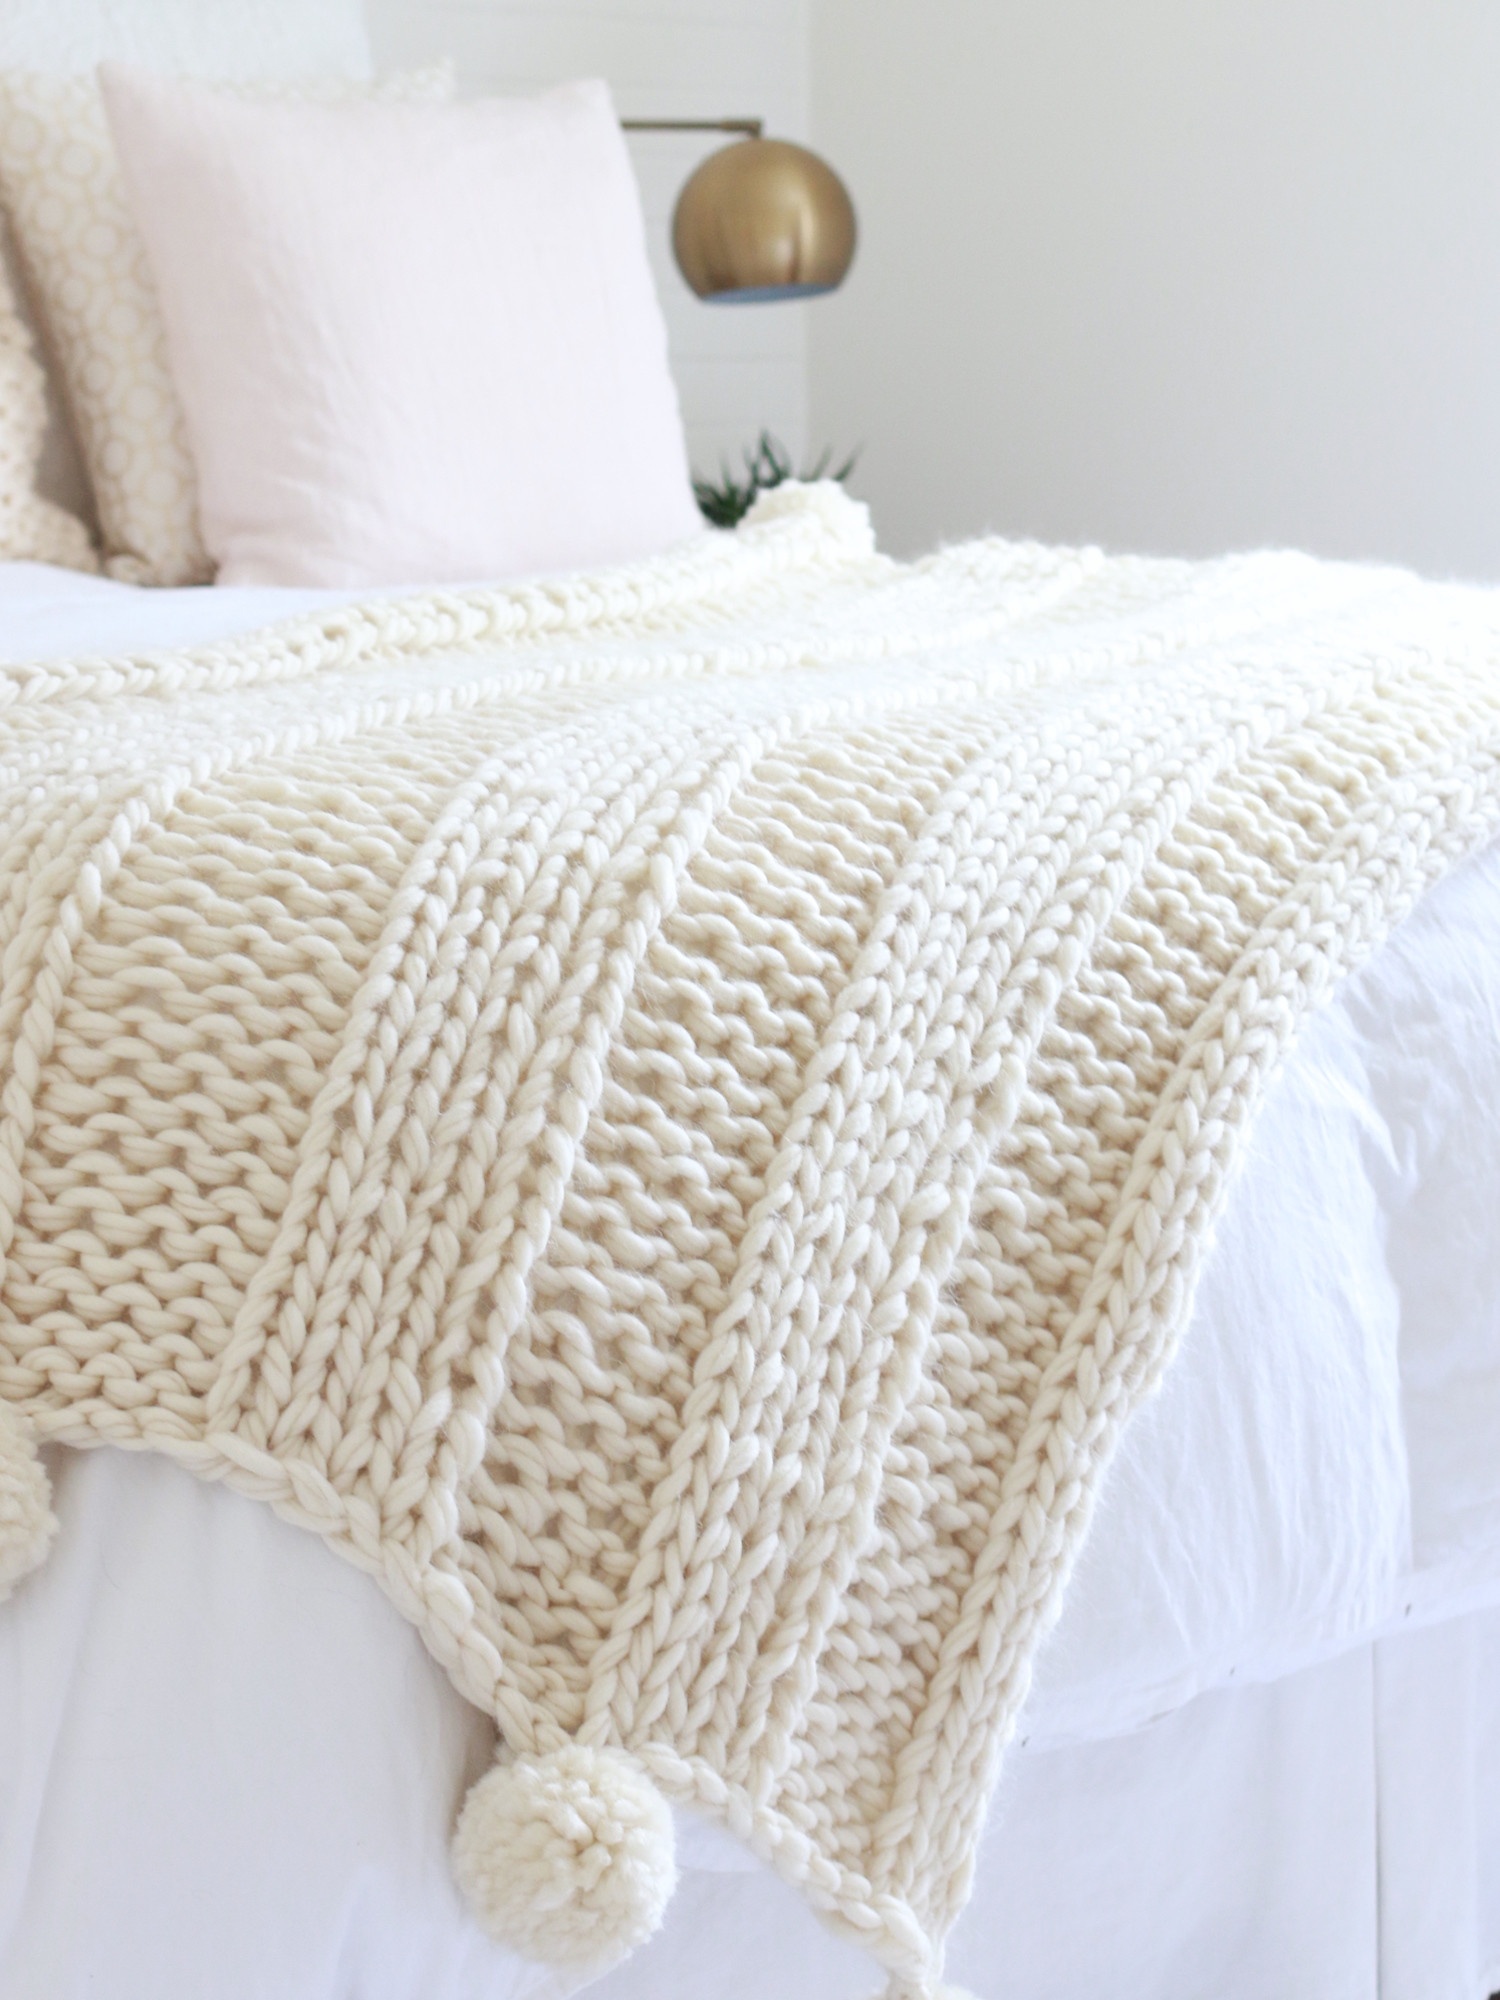 Chunky Knit Blanket Pattern Lovely Free Chunky Knit Blanket Pattern Knit A Blanket In A Of Delightful 41 Pictures Chunky Knit Blanket Pattern